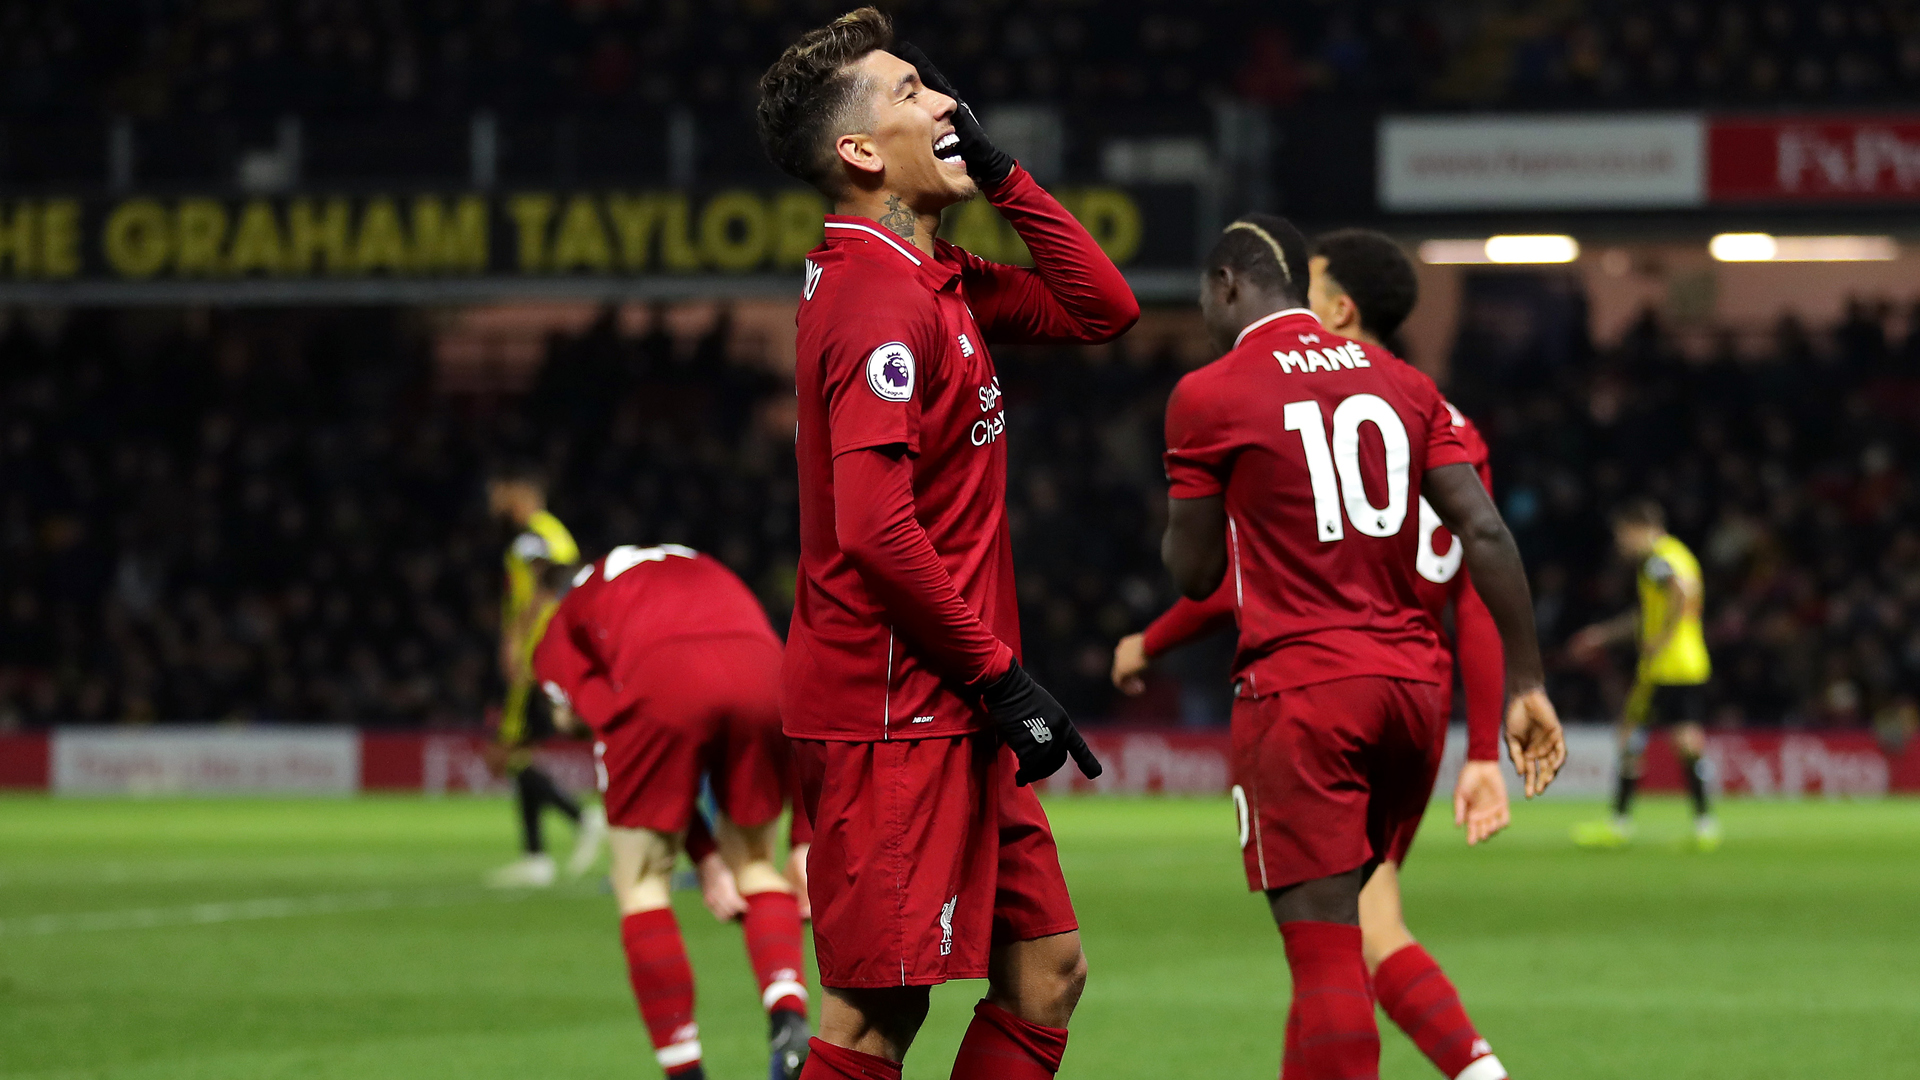 ae9cc8a96 Analyzing Roberto Firmino s Importance In Liverpool s 4-2-3-1 ...